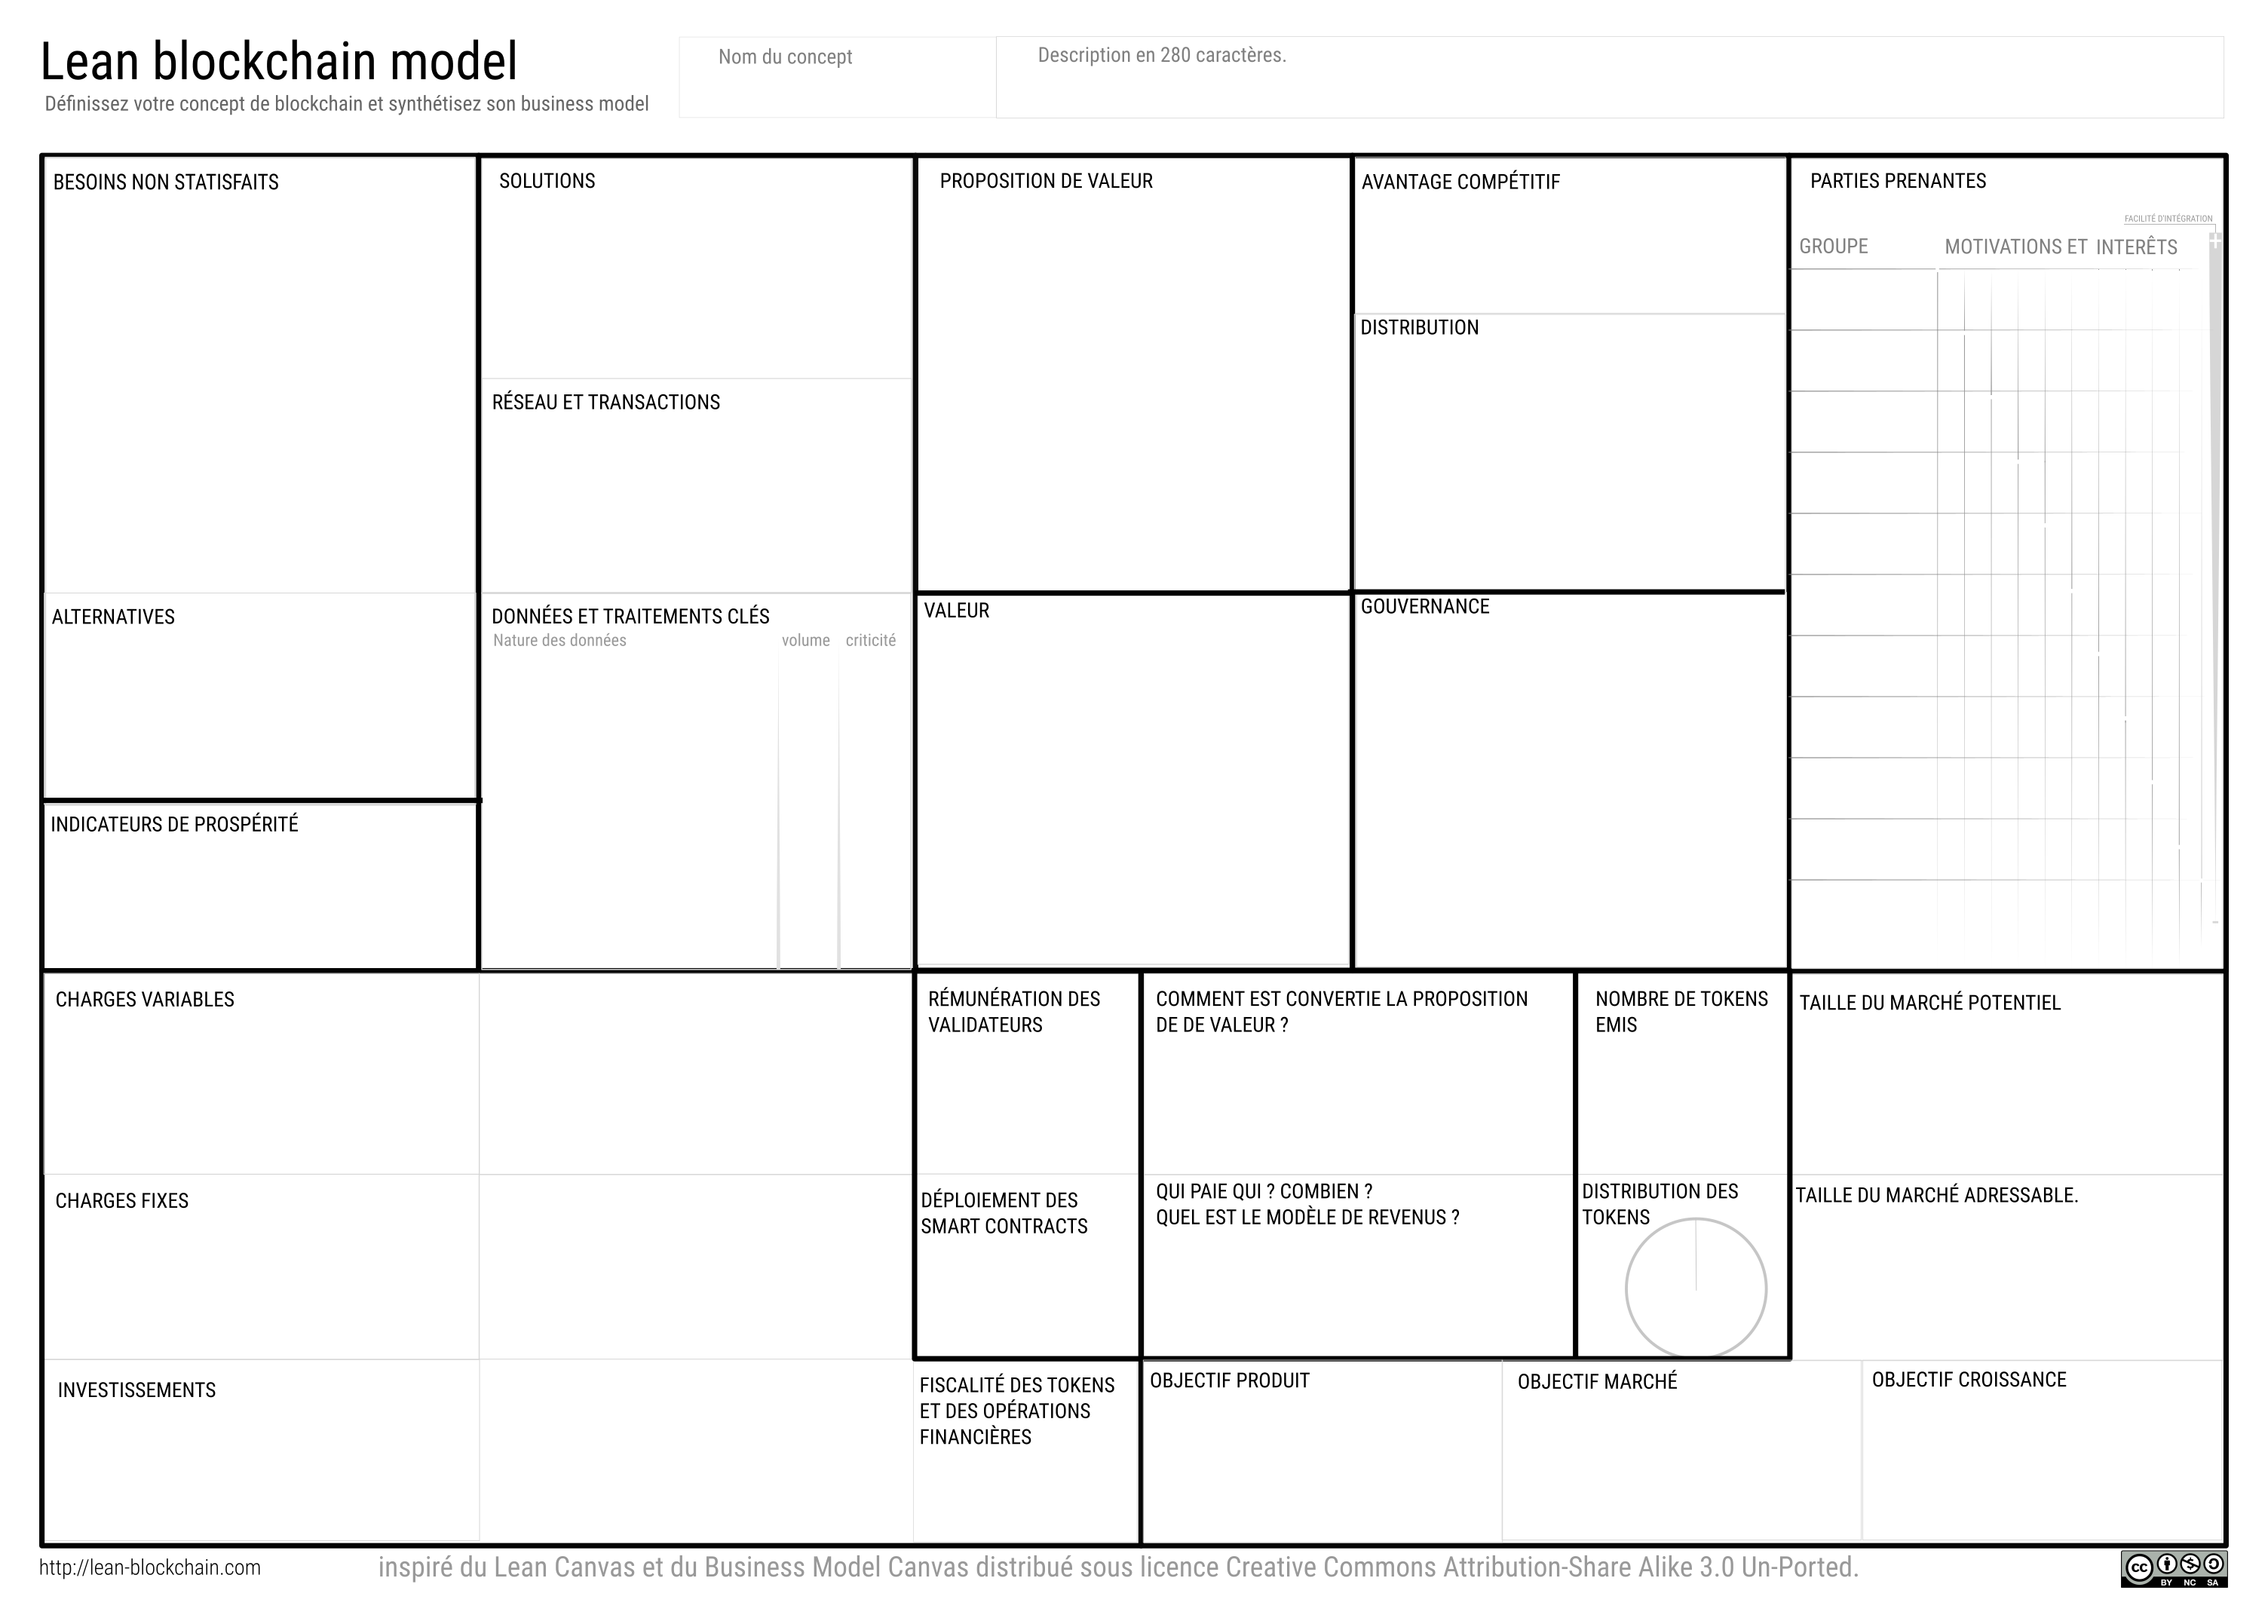 Le Lean Blockchain Model